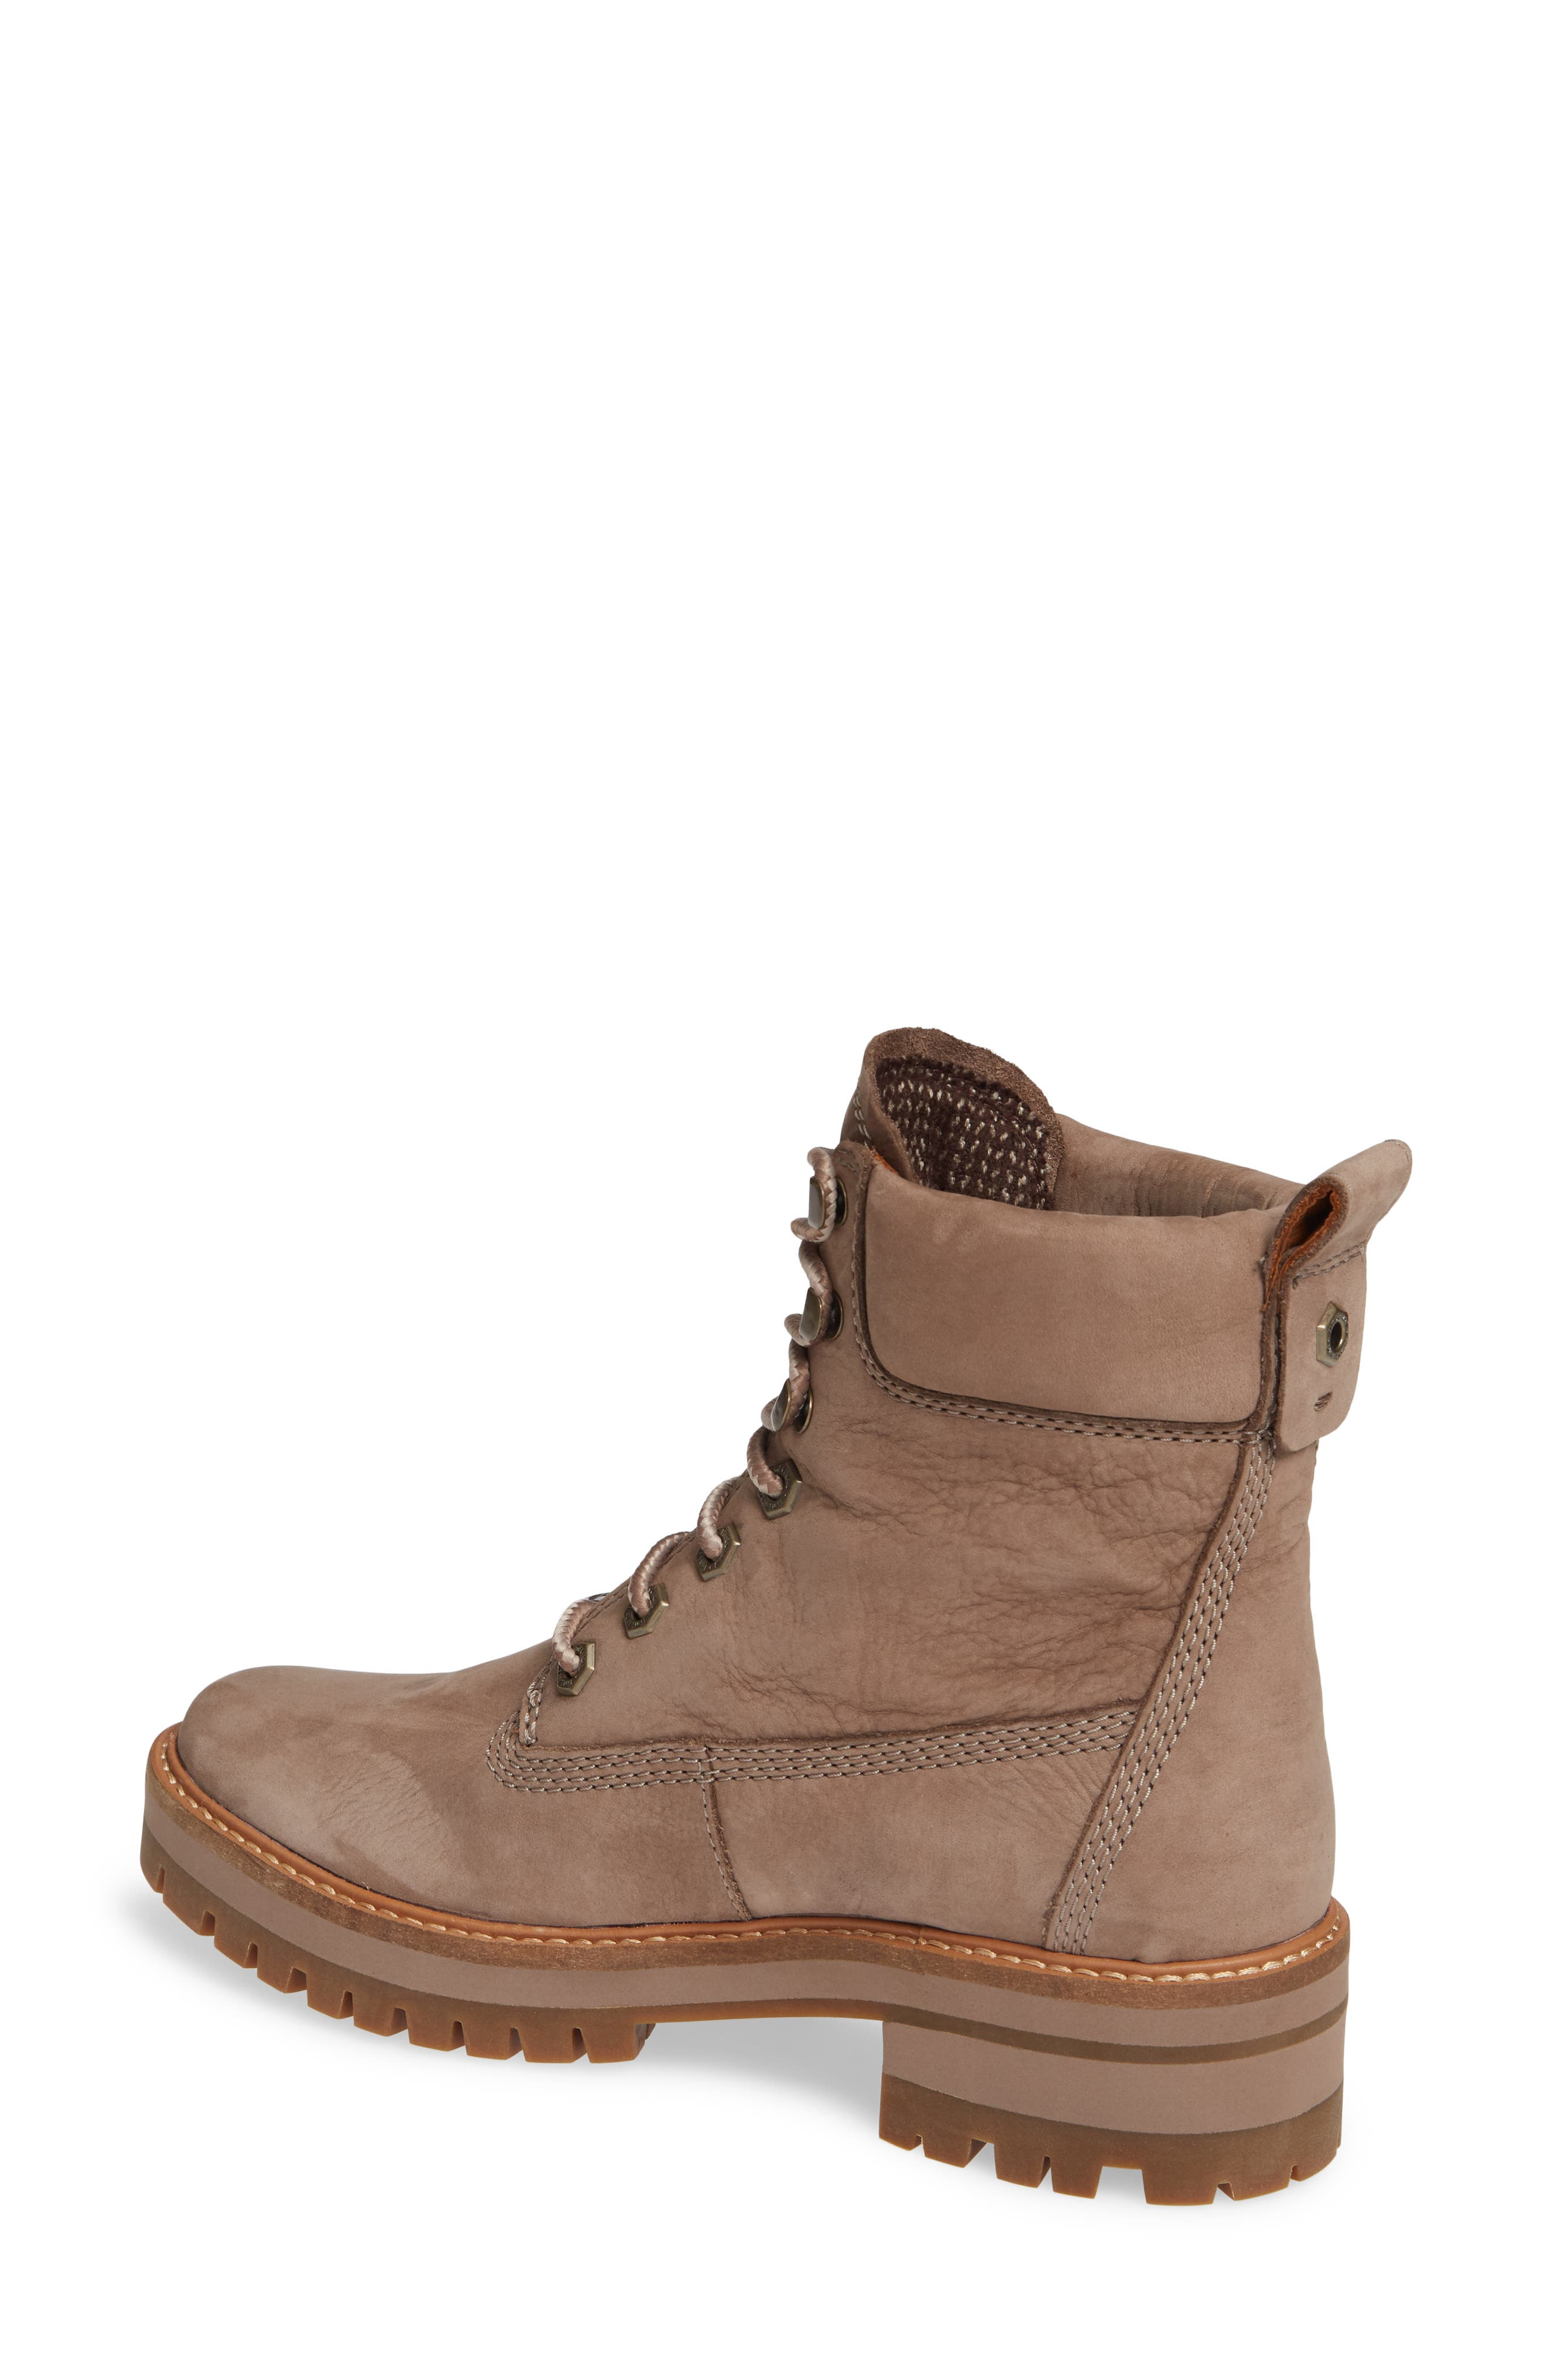 TIMBERLAND, Courmayeur Valley Water Resistant Hiking Boot, Alternate thumbnail 2, color, TAUPE GREY NUBUCK